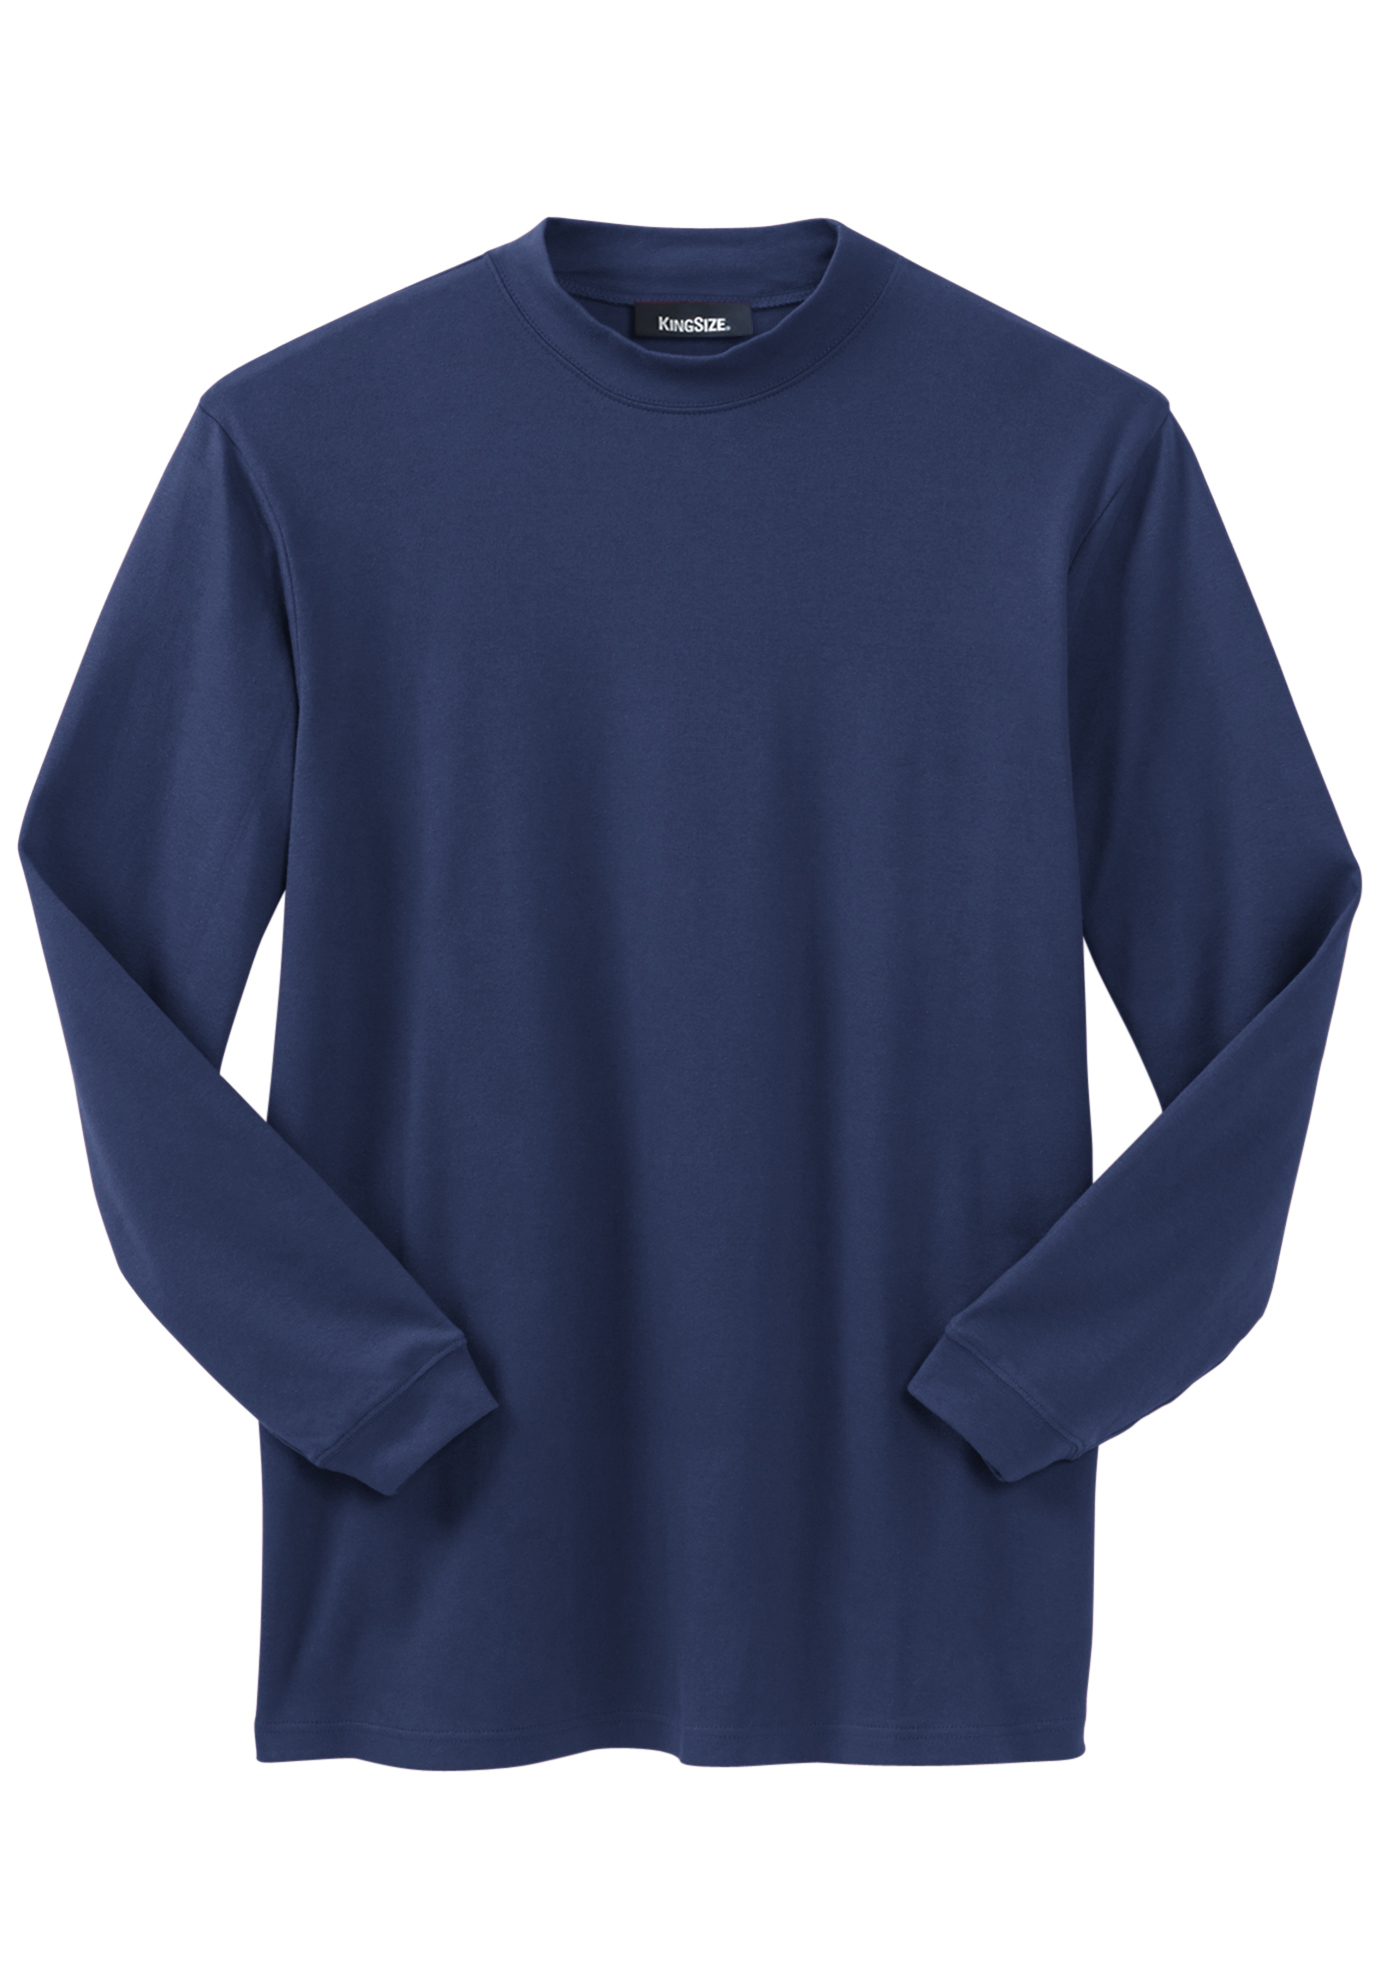 Mock Turtleneck Long-Sleeve Cotton Tee,